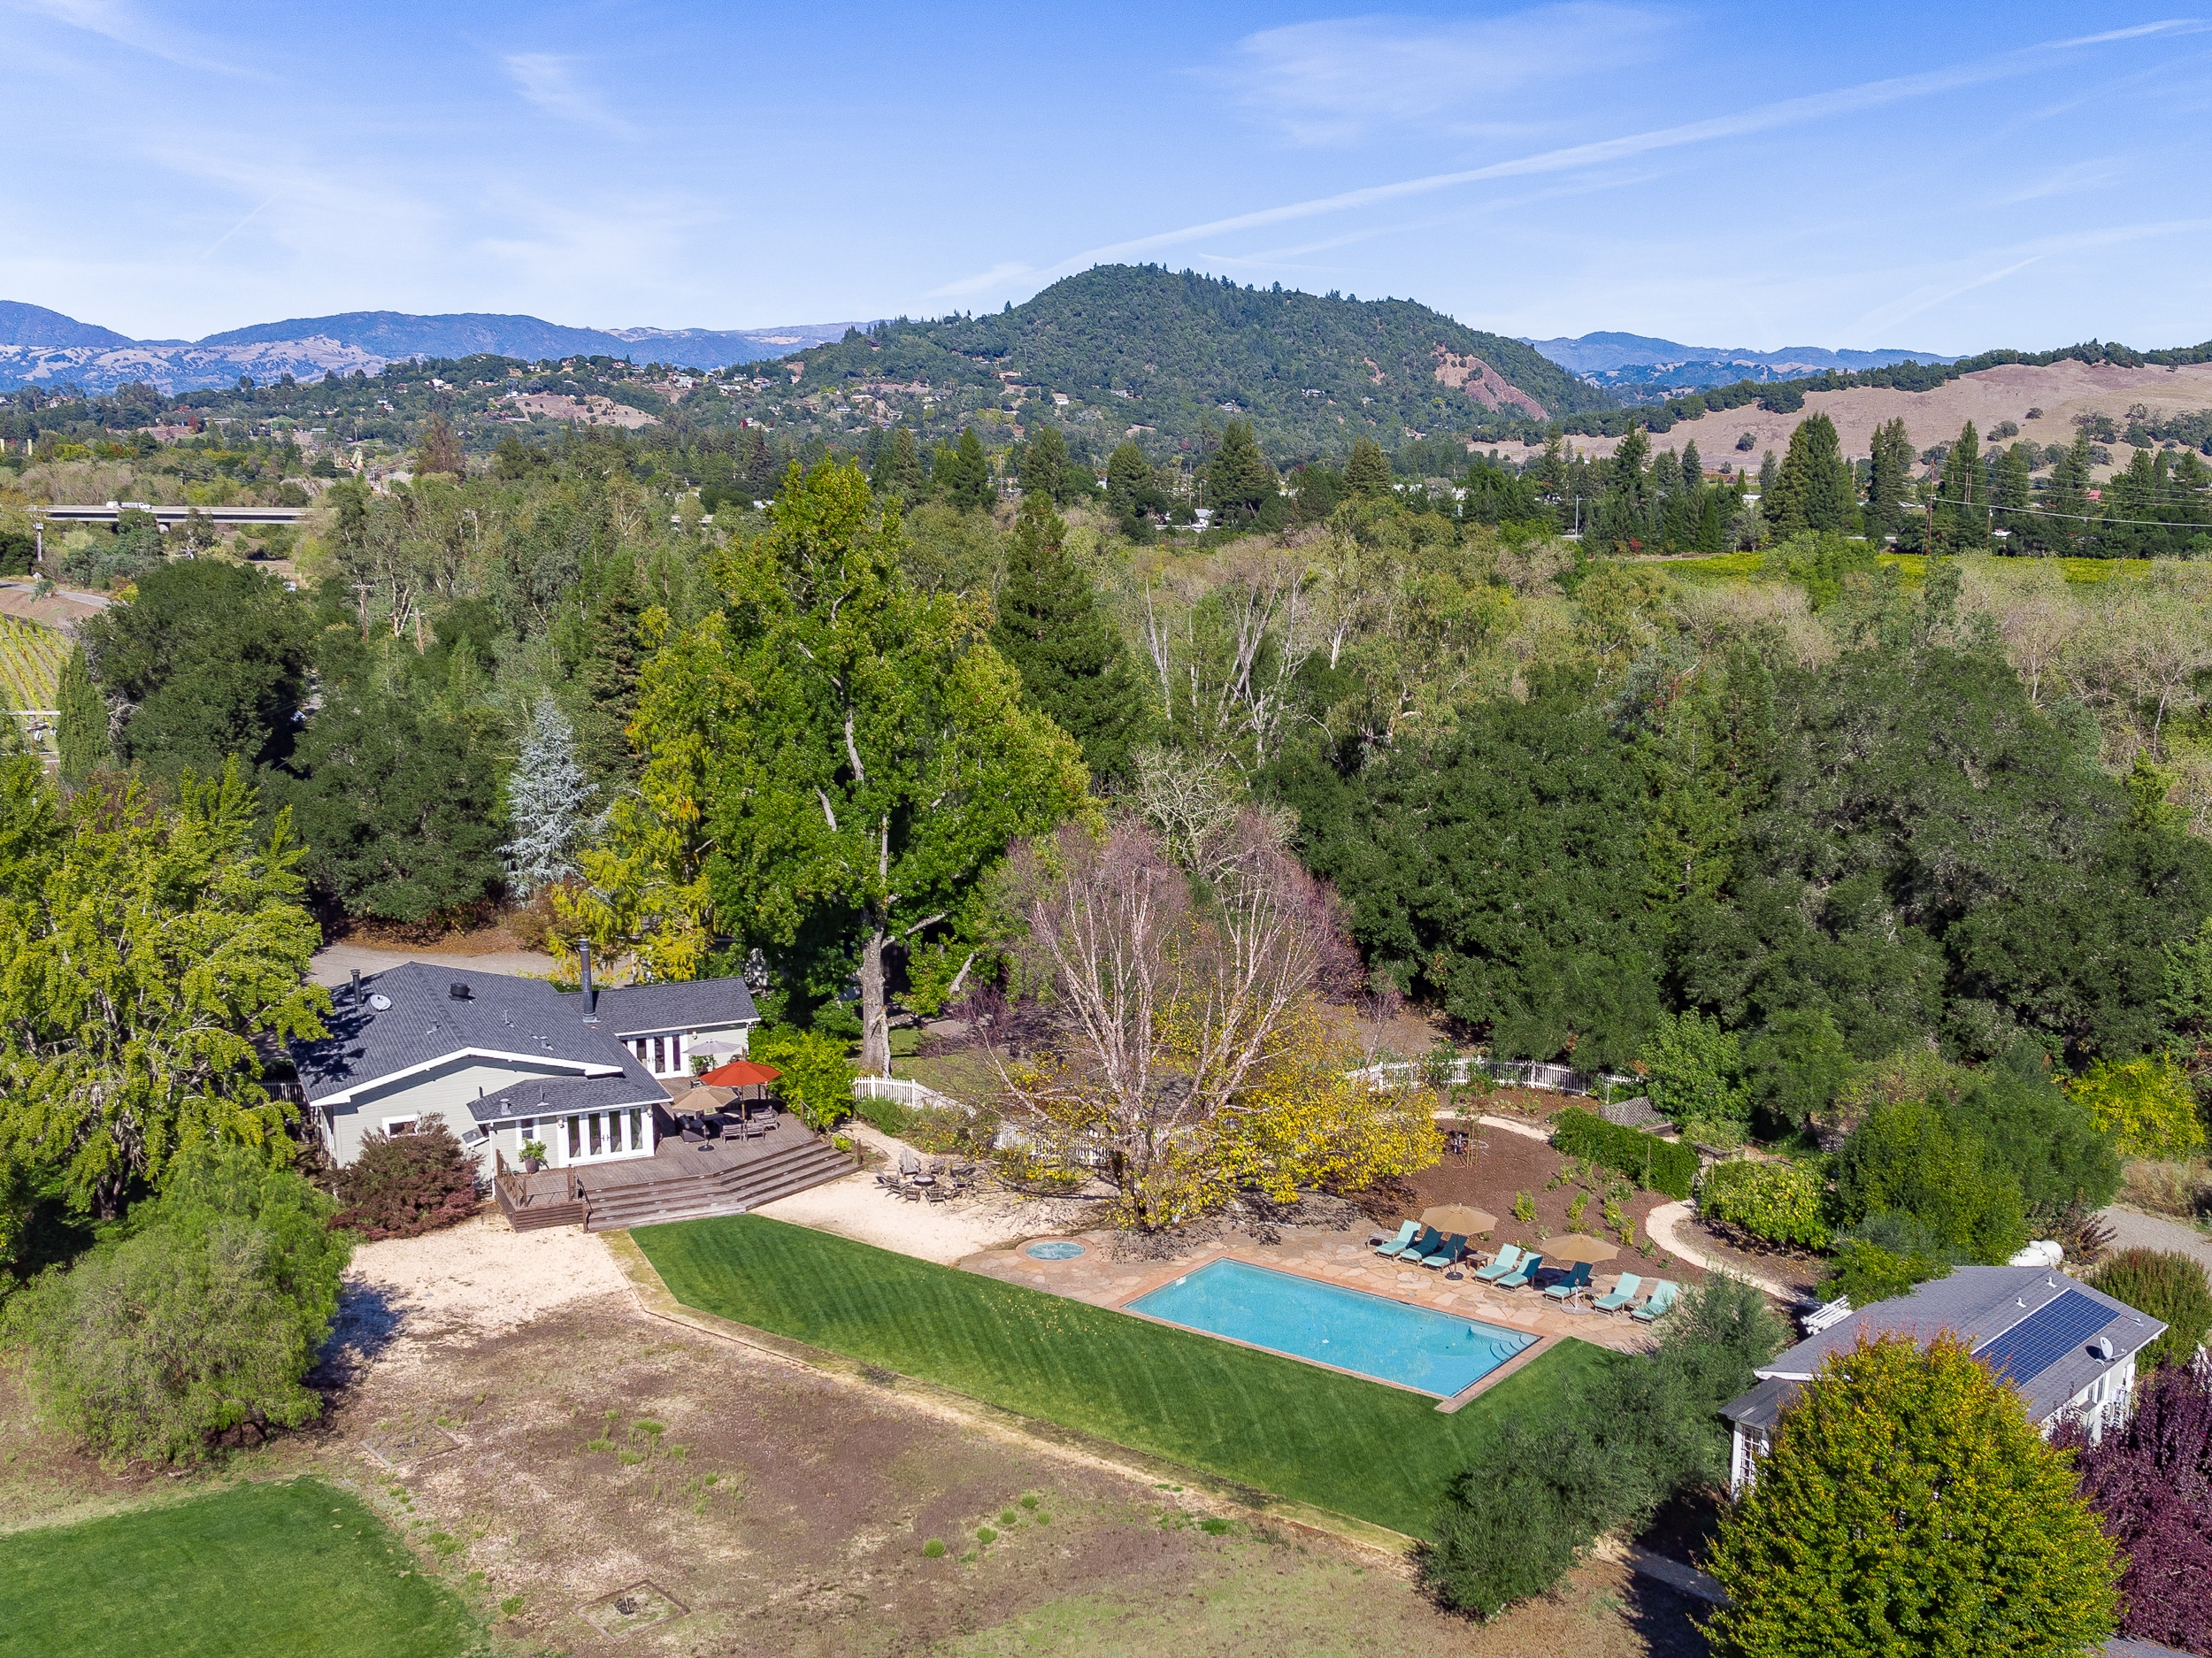 Welcome to Healdsburg! Your rental is professionally managed by TurnKey Vacation Rentals.